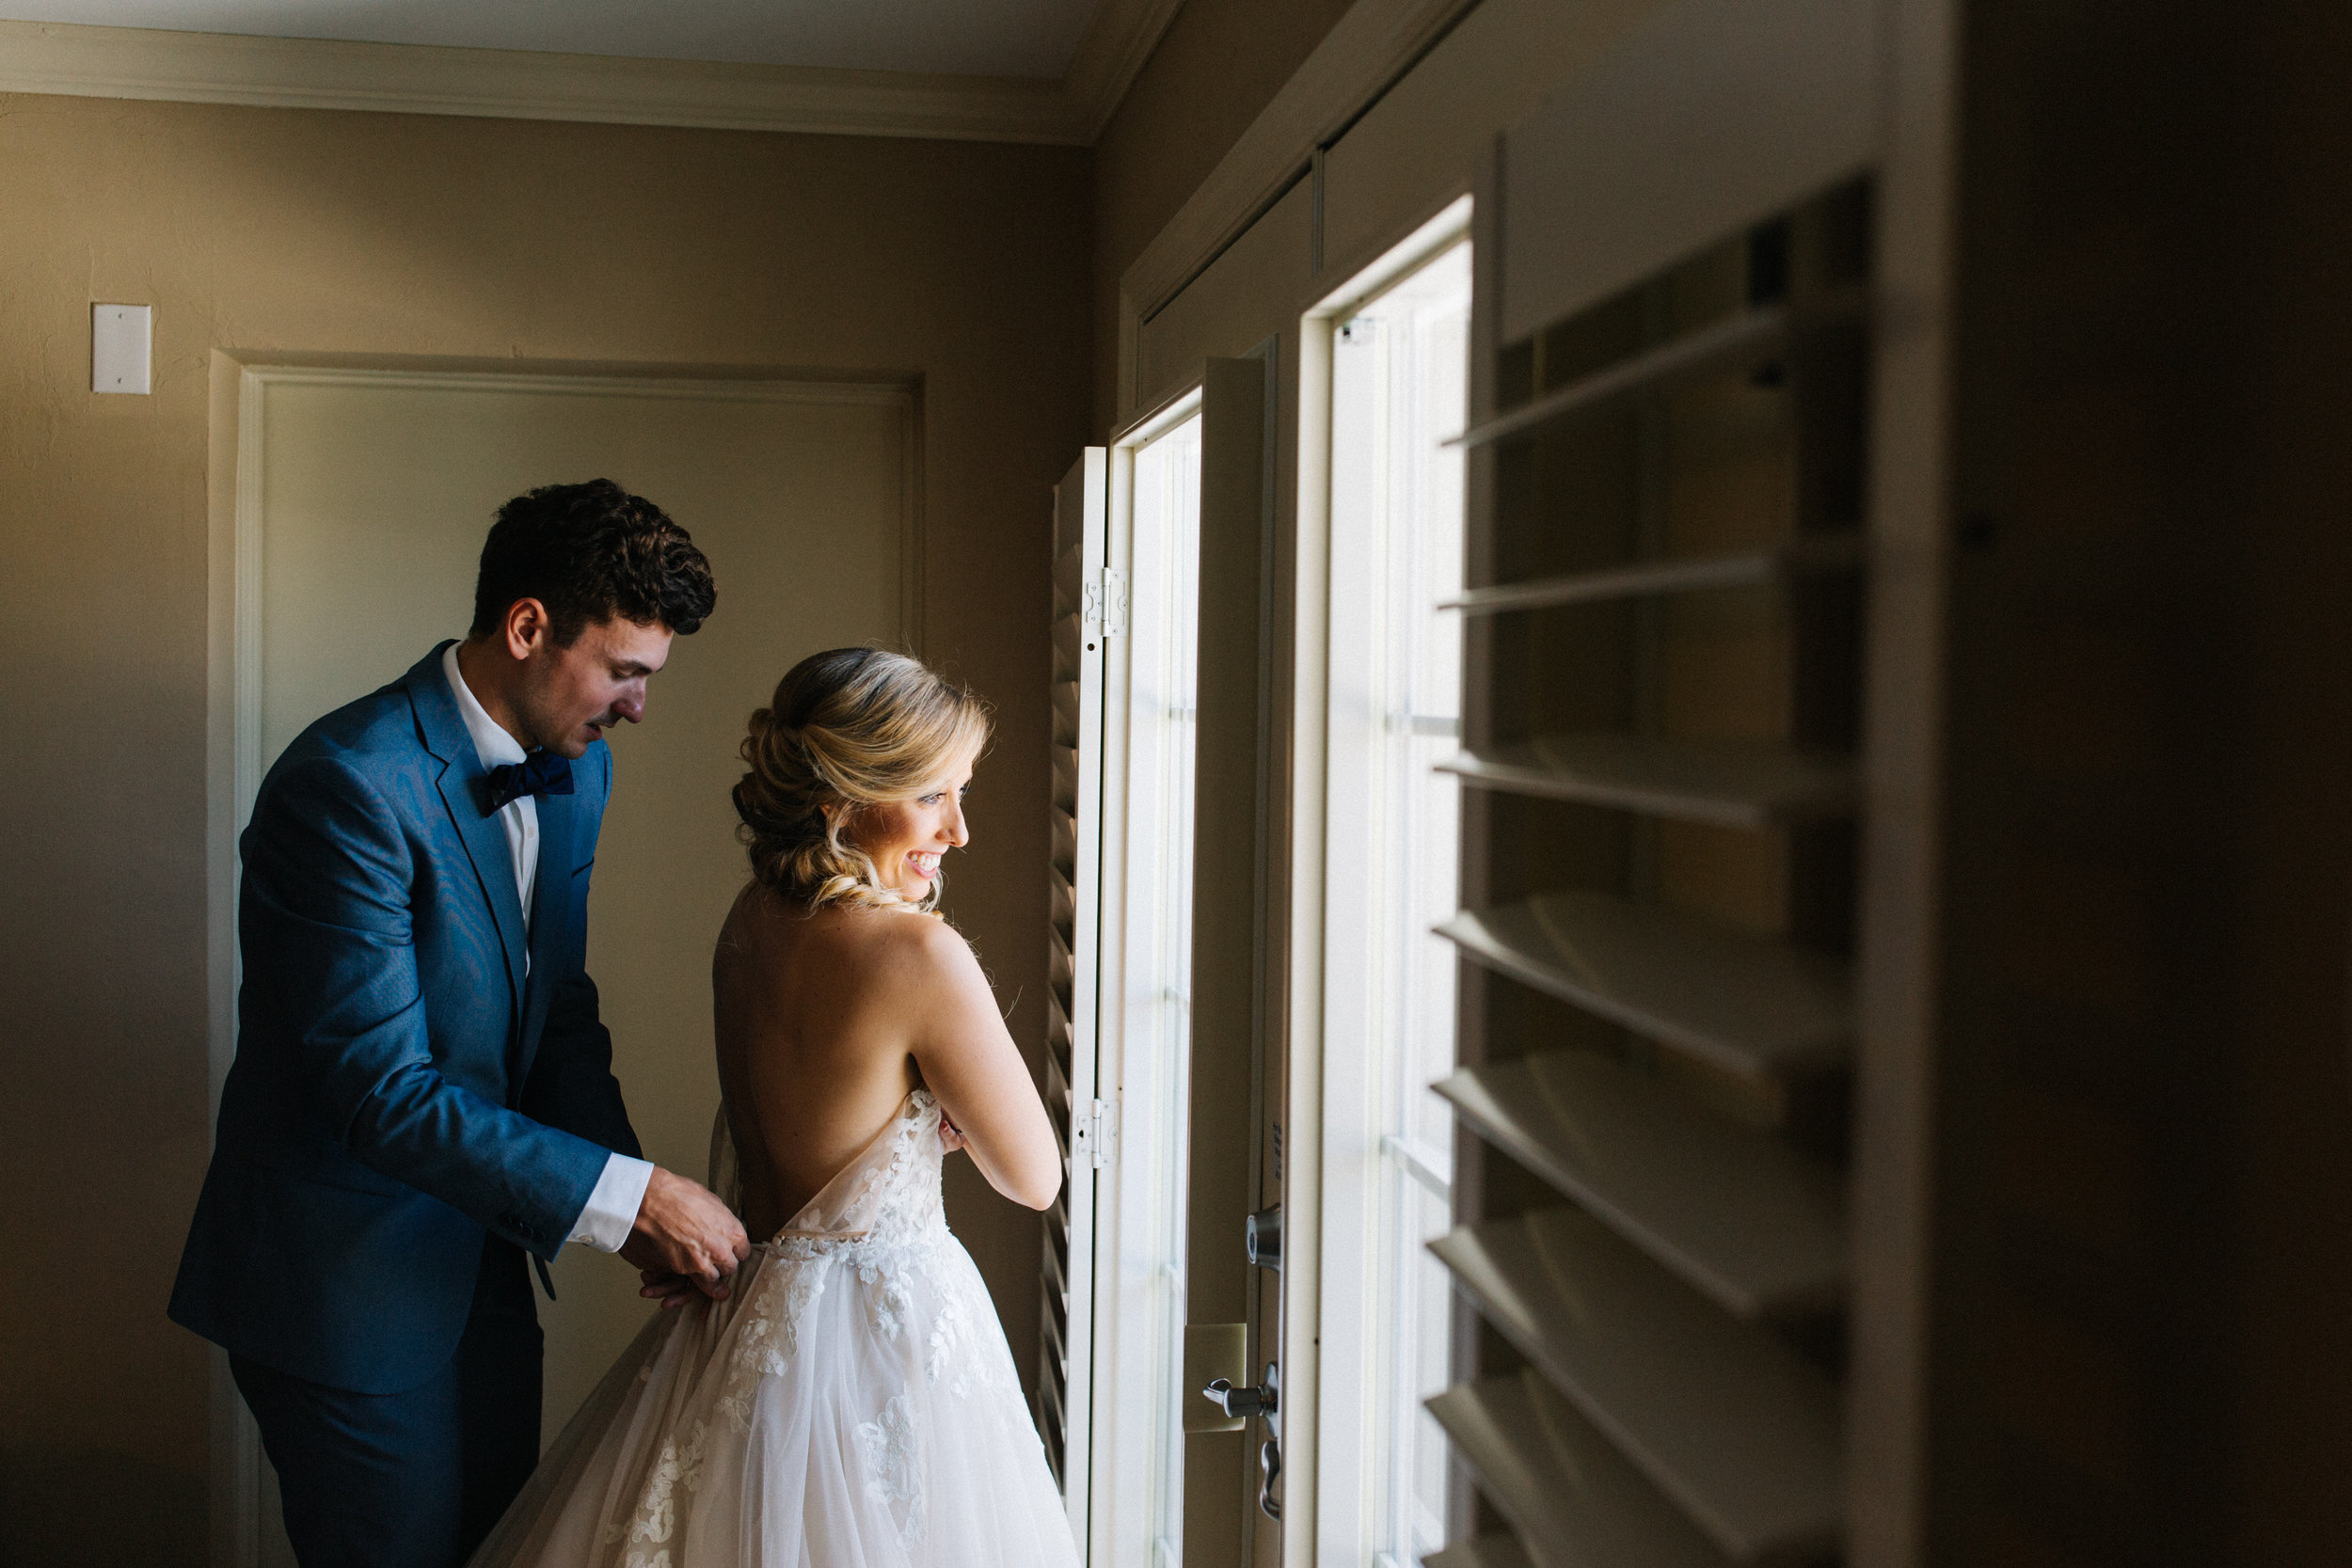 Orlando-Wedding-Photographer_Wedding-at-Casa-Feliz_Kaylin-and-Evan_Orlando-FL0141.jpg